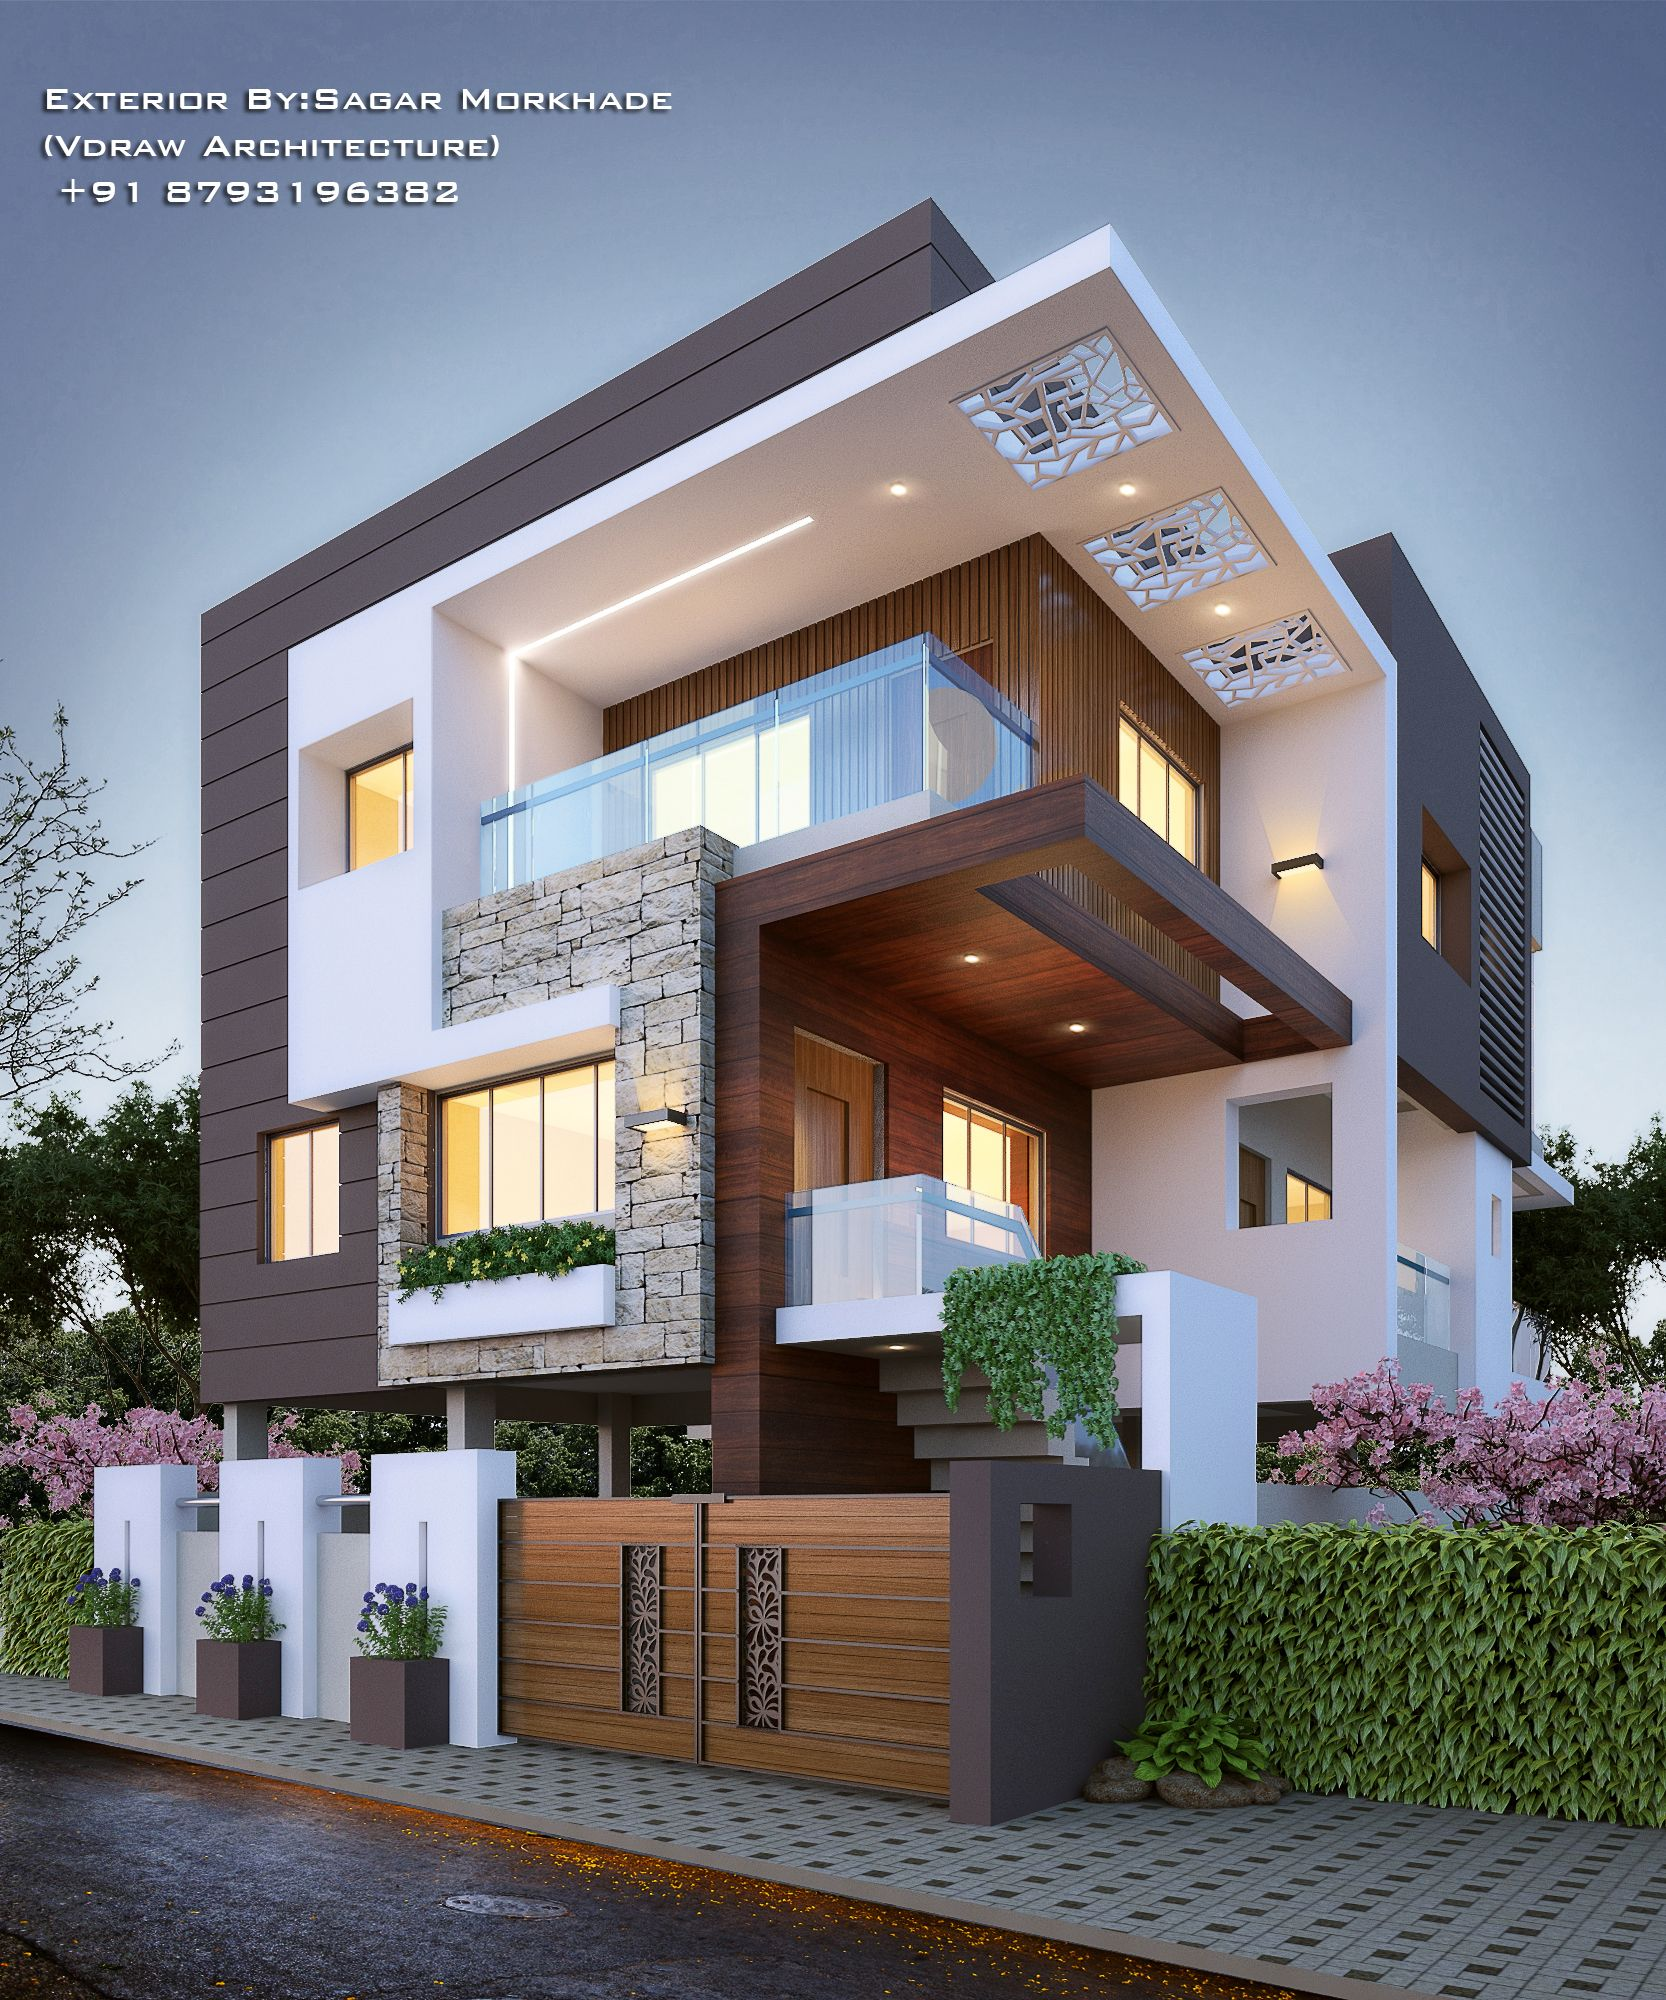 Home Design Ideas Exterior Photos: #Modern #Residential #Exterior By, Ar. Sagar Morkhade